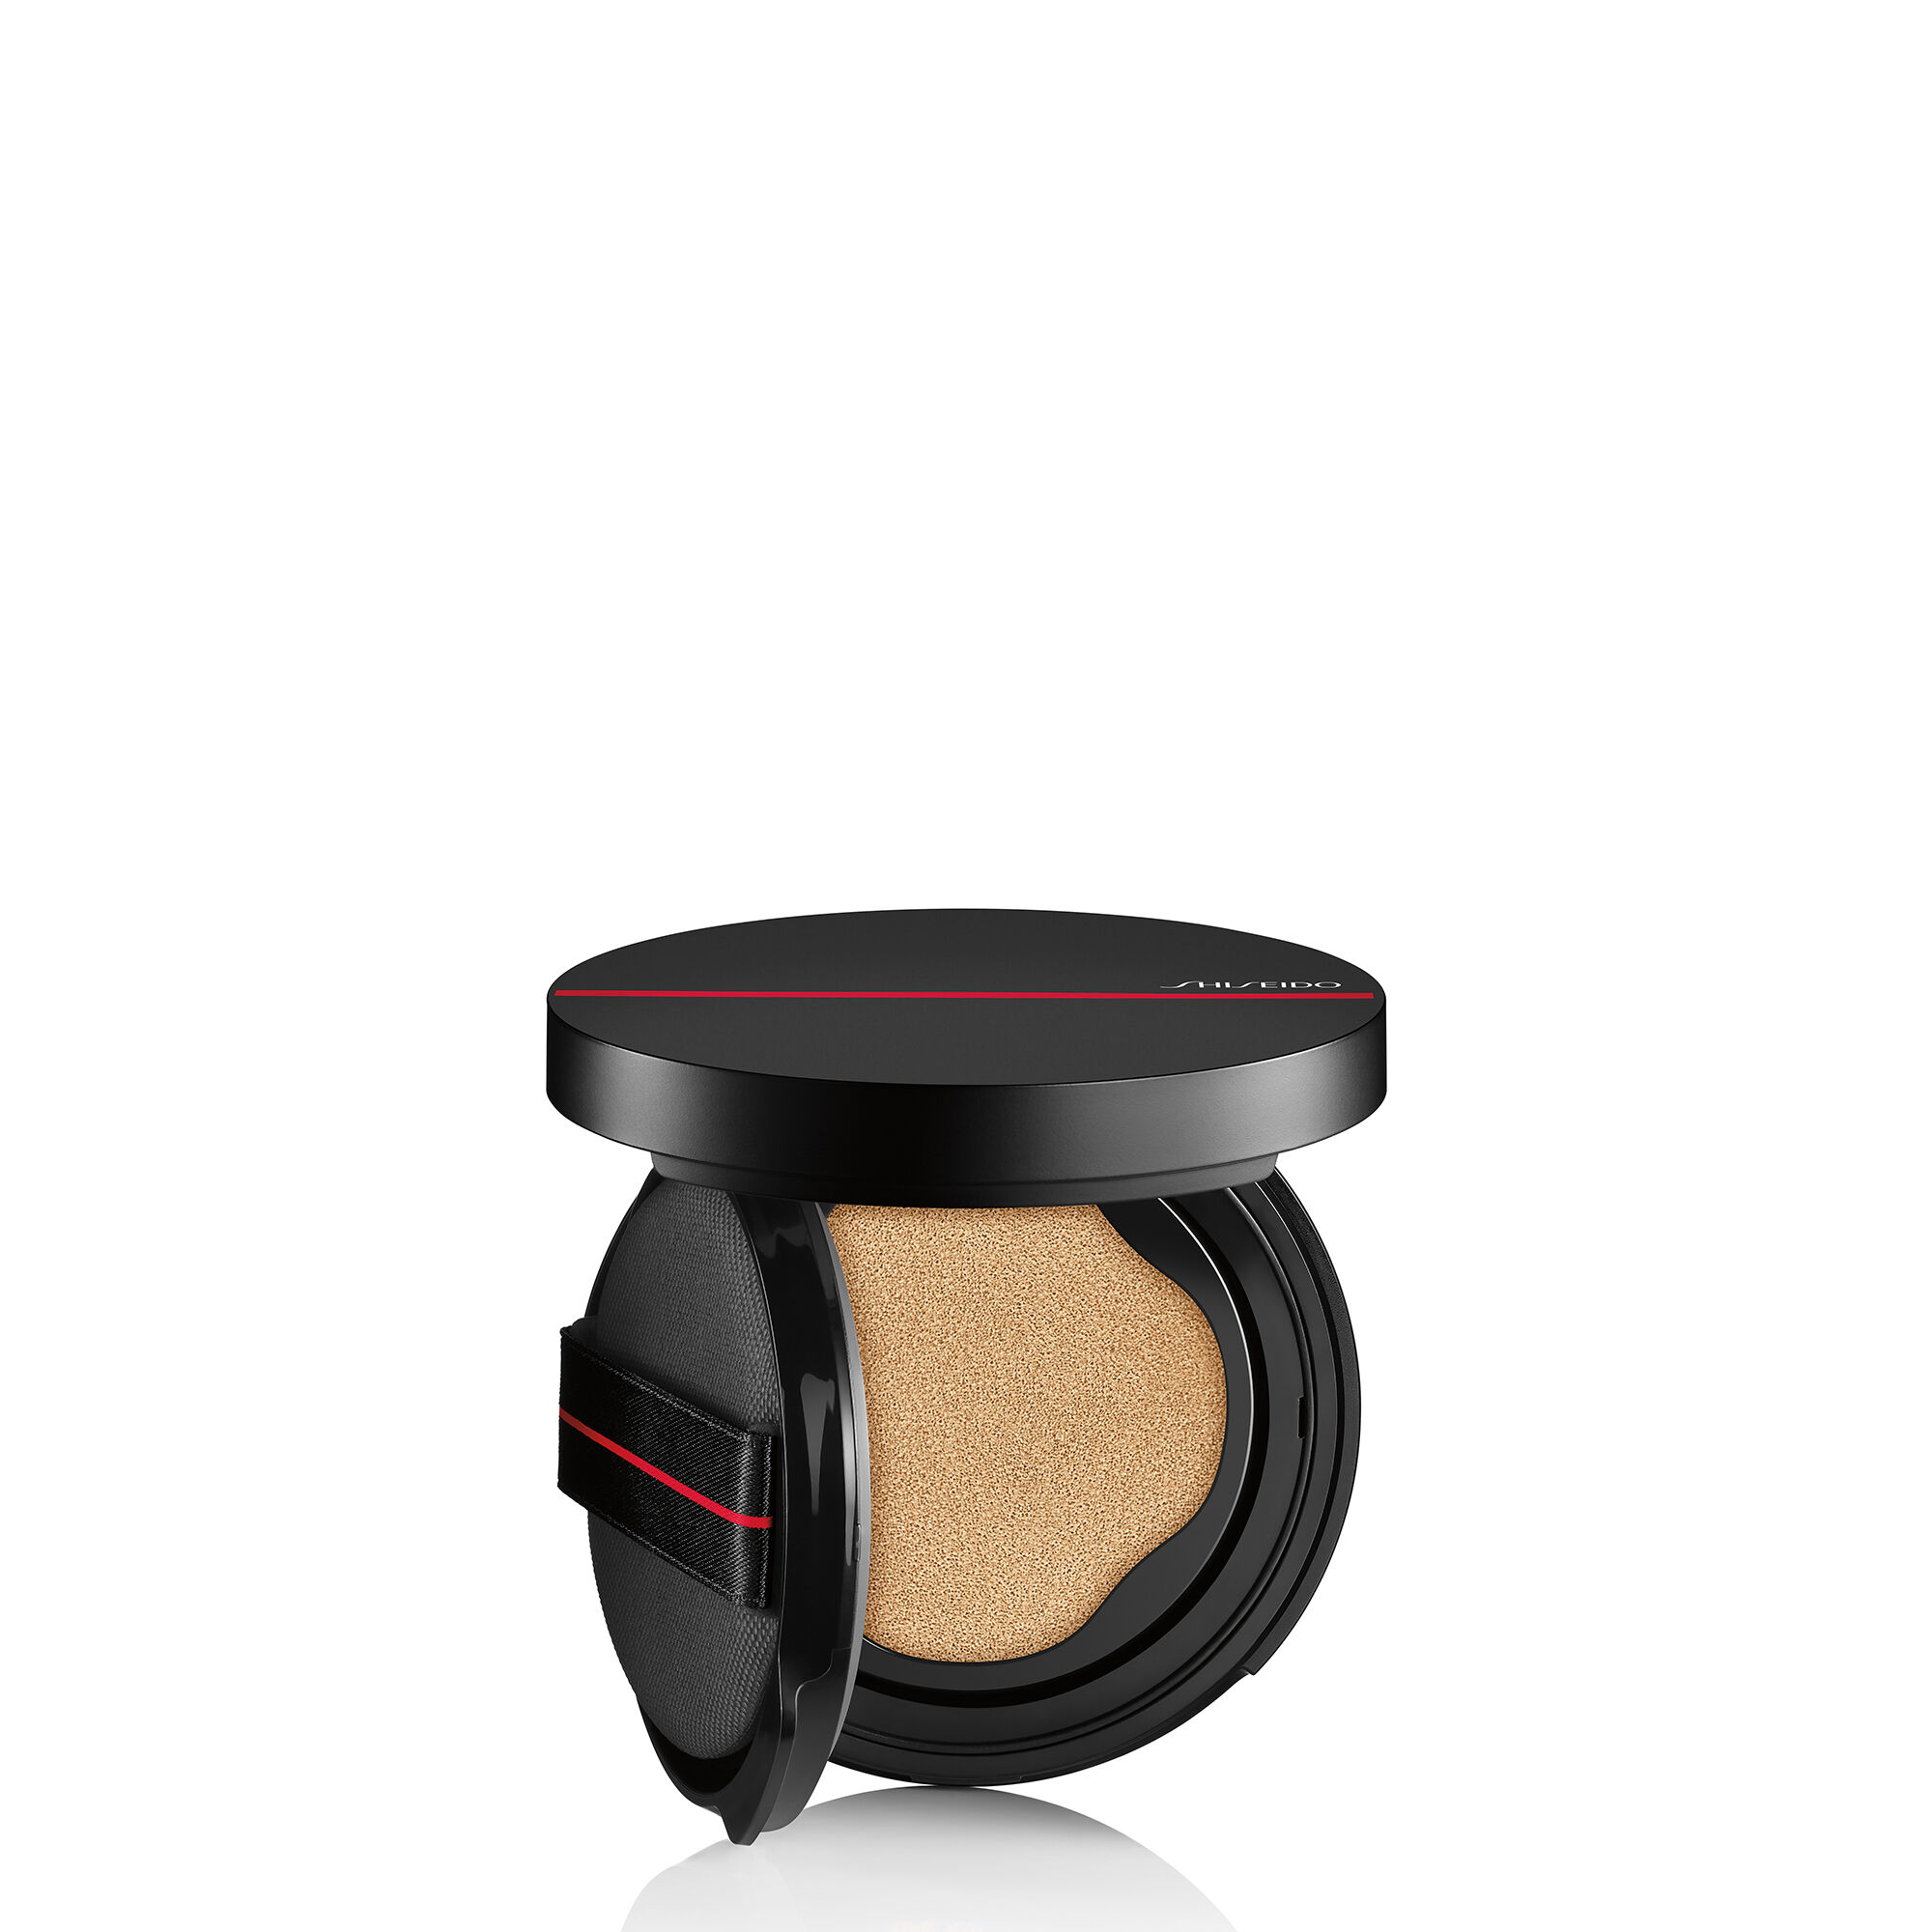 Synchro Skin Self Refreshing Cushion Compact Foundation - 120 Ivory